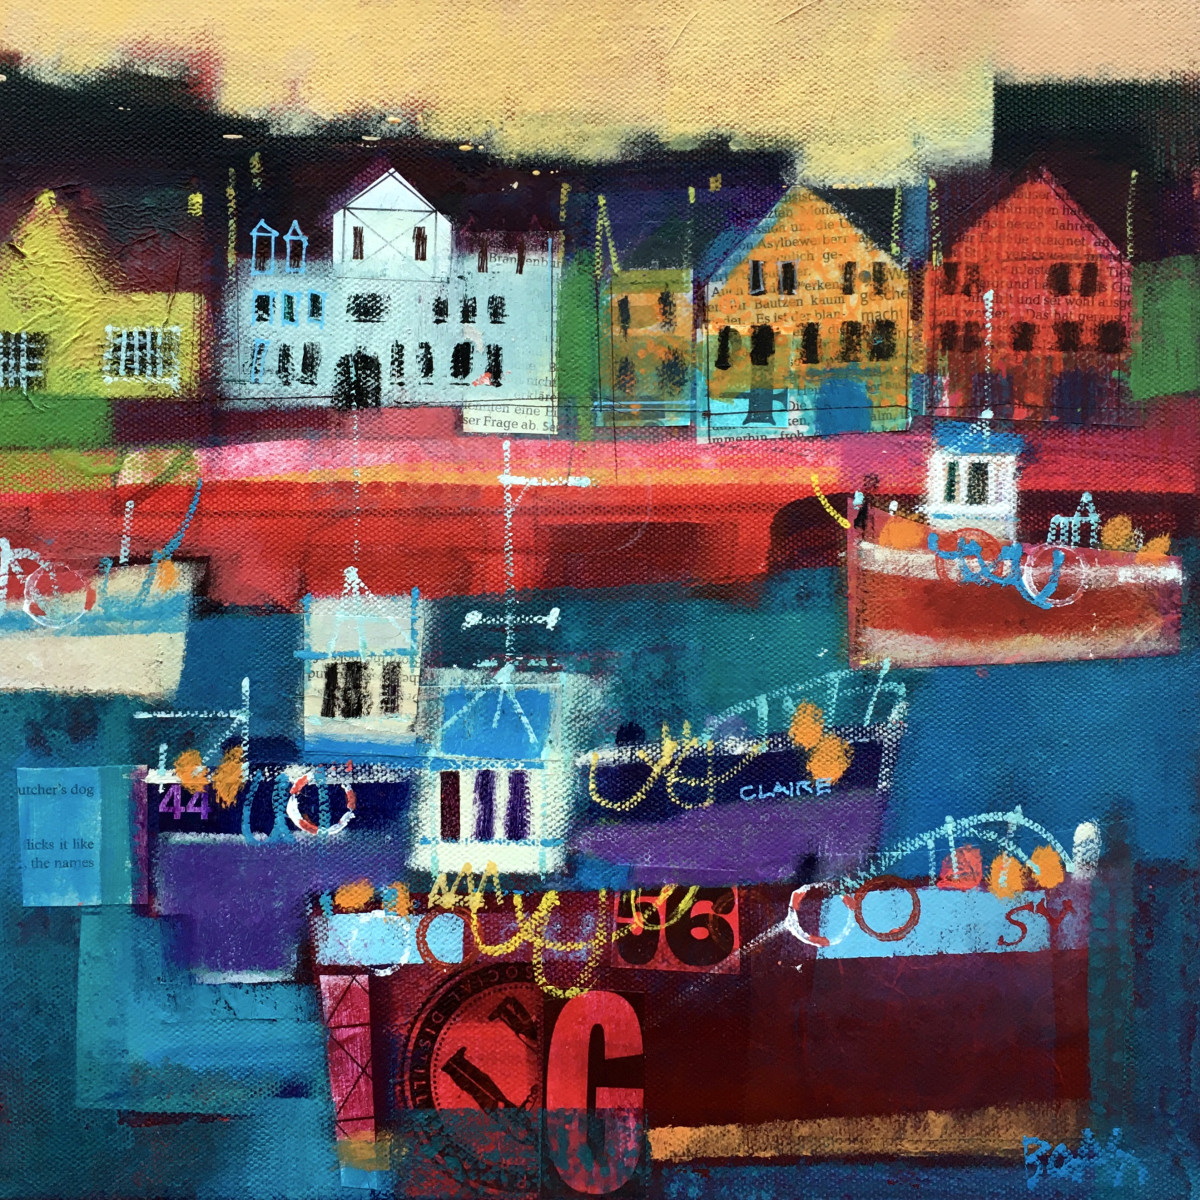 Harbourside Stornoway by francis boag